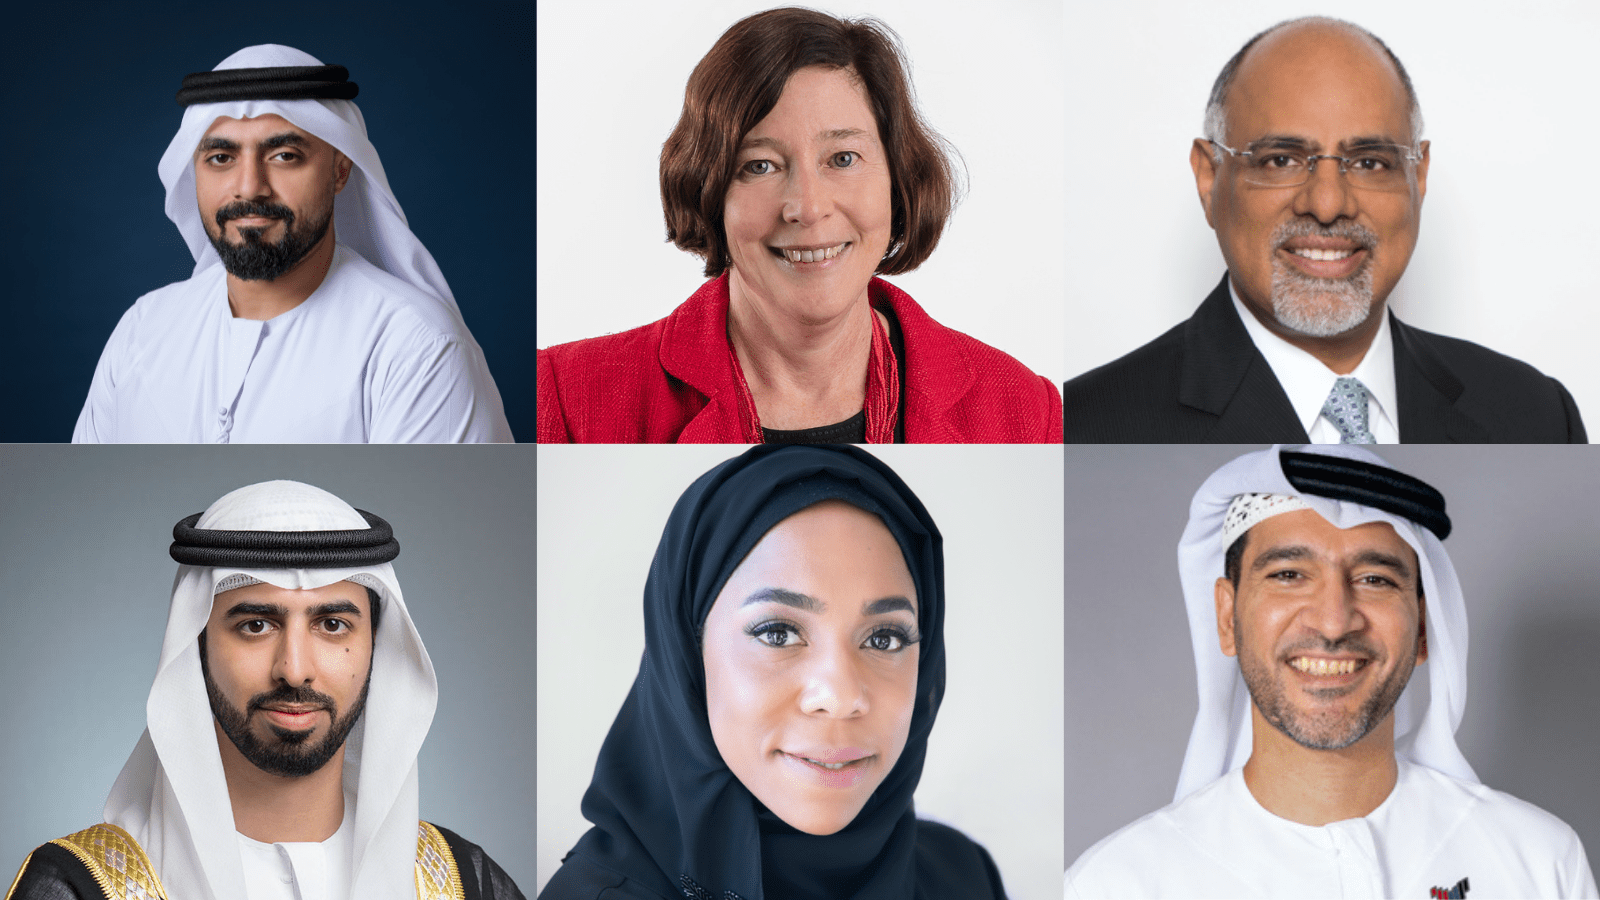 2021-mepra-majlis-speakers-call-for-innovation-in-communications-industry-or-risk-being-left-behind